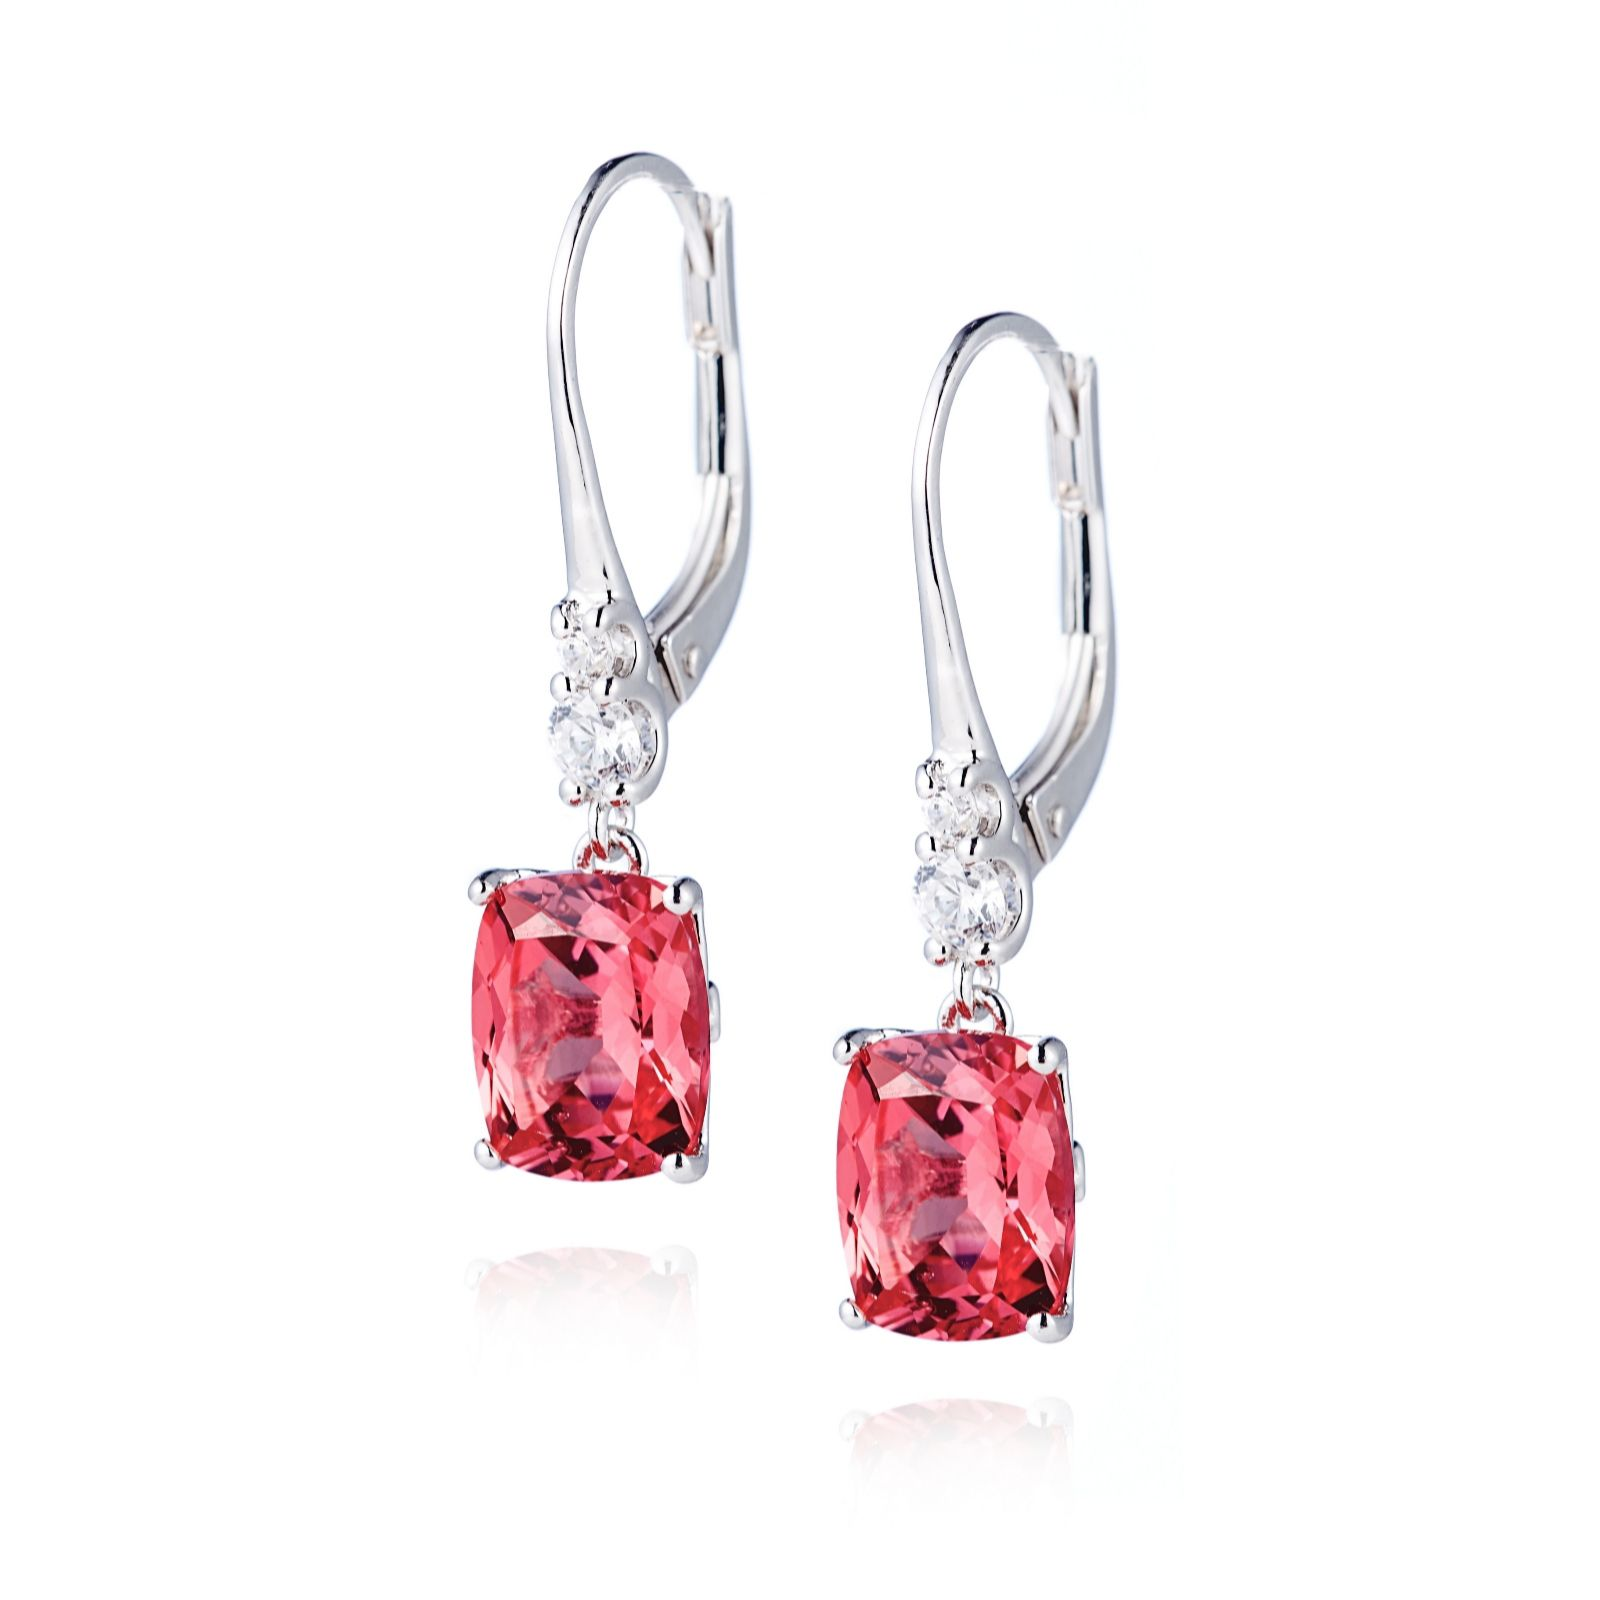 470978eb9 Diamonique 4.7ct tw Simulated Red Diamond Earrings Sterling Silver ...